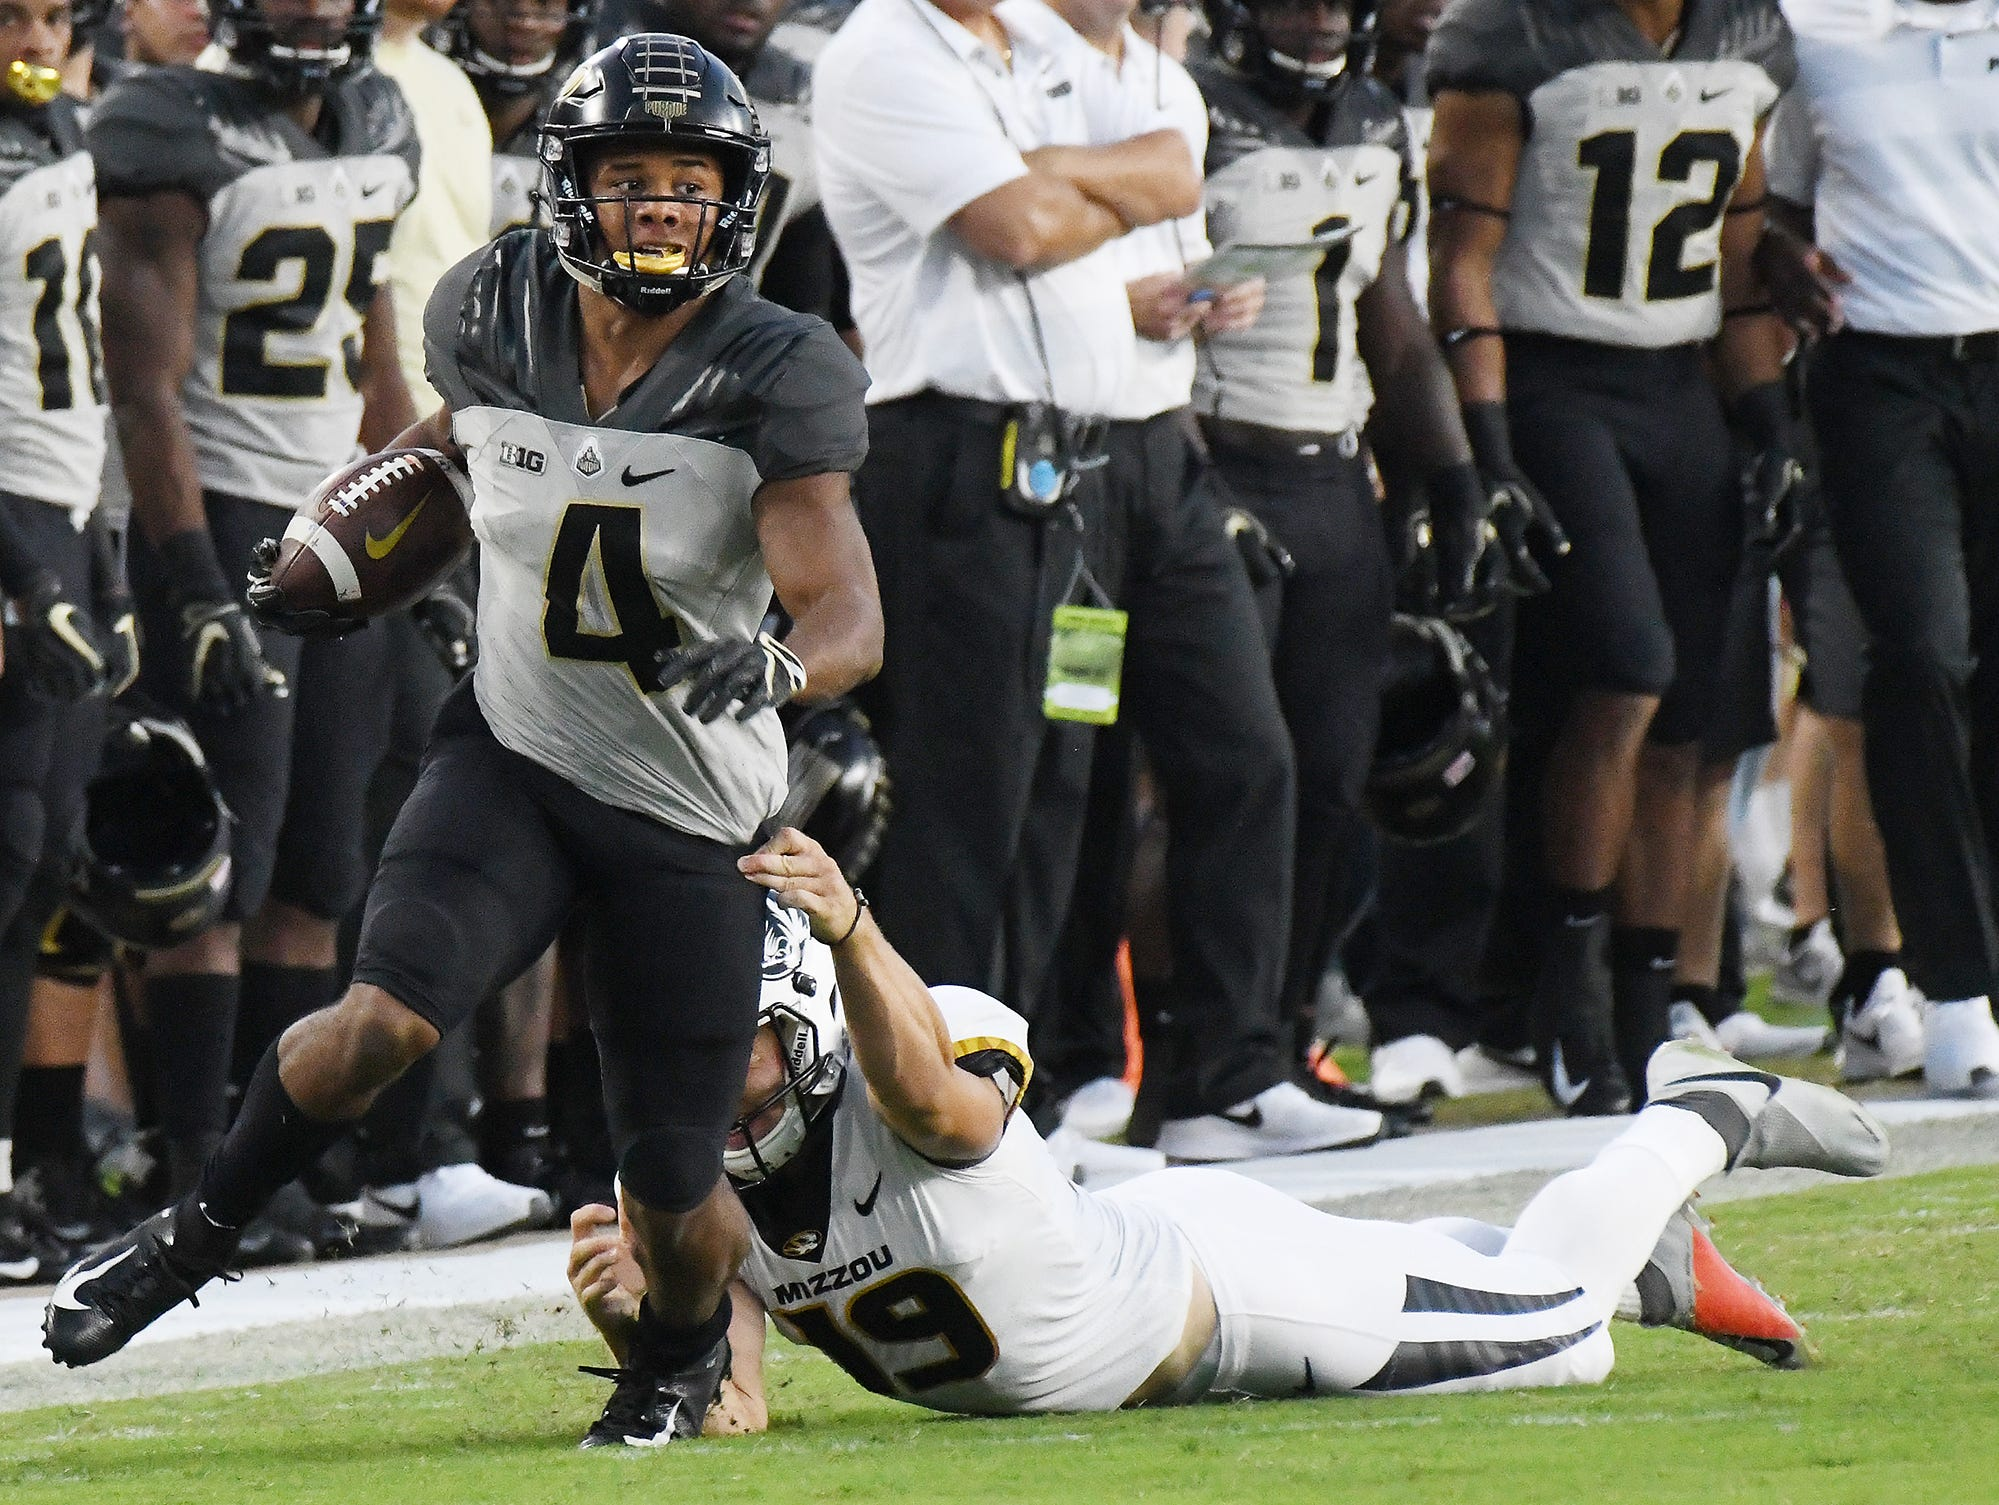 Rondale Moore of Purdue slips through the hands of Tucker McCann of Missouri on a first half return Saturday, September 15, 2018, in West Lafayette. Missouri defeated Purdue 40-37 on Tucker McCann's field goal as time expired.